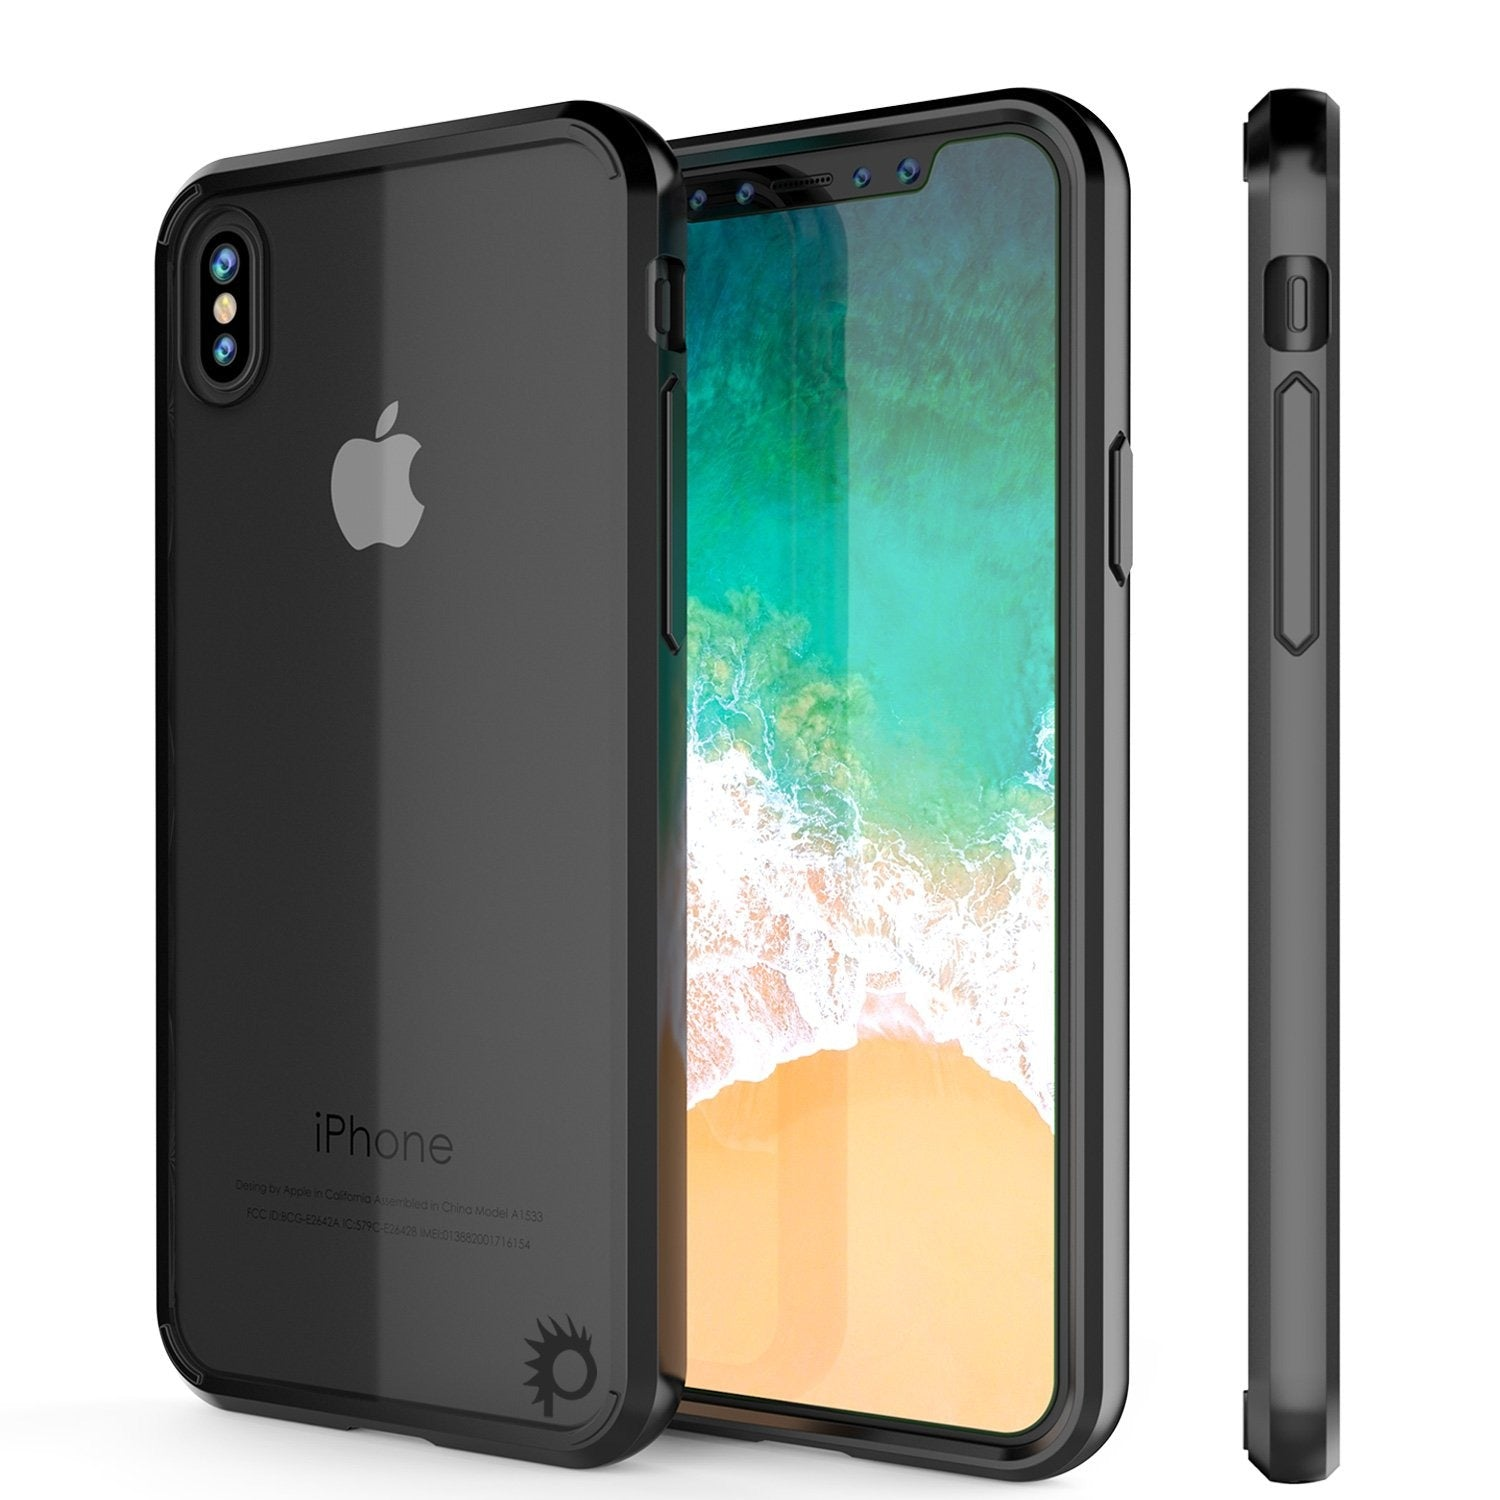 iPhone X Case, PUNKcase [LUCID 2.0 Series] [Slim Fit] Armor Cover W/Integrated Anti-Shock System [Black] - PunkCase NZ